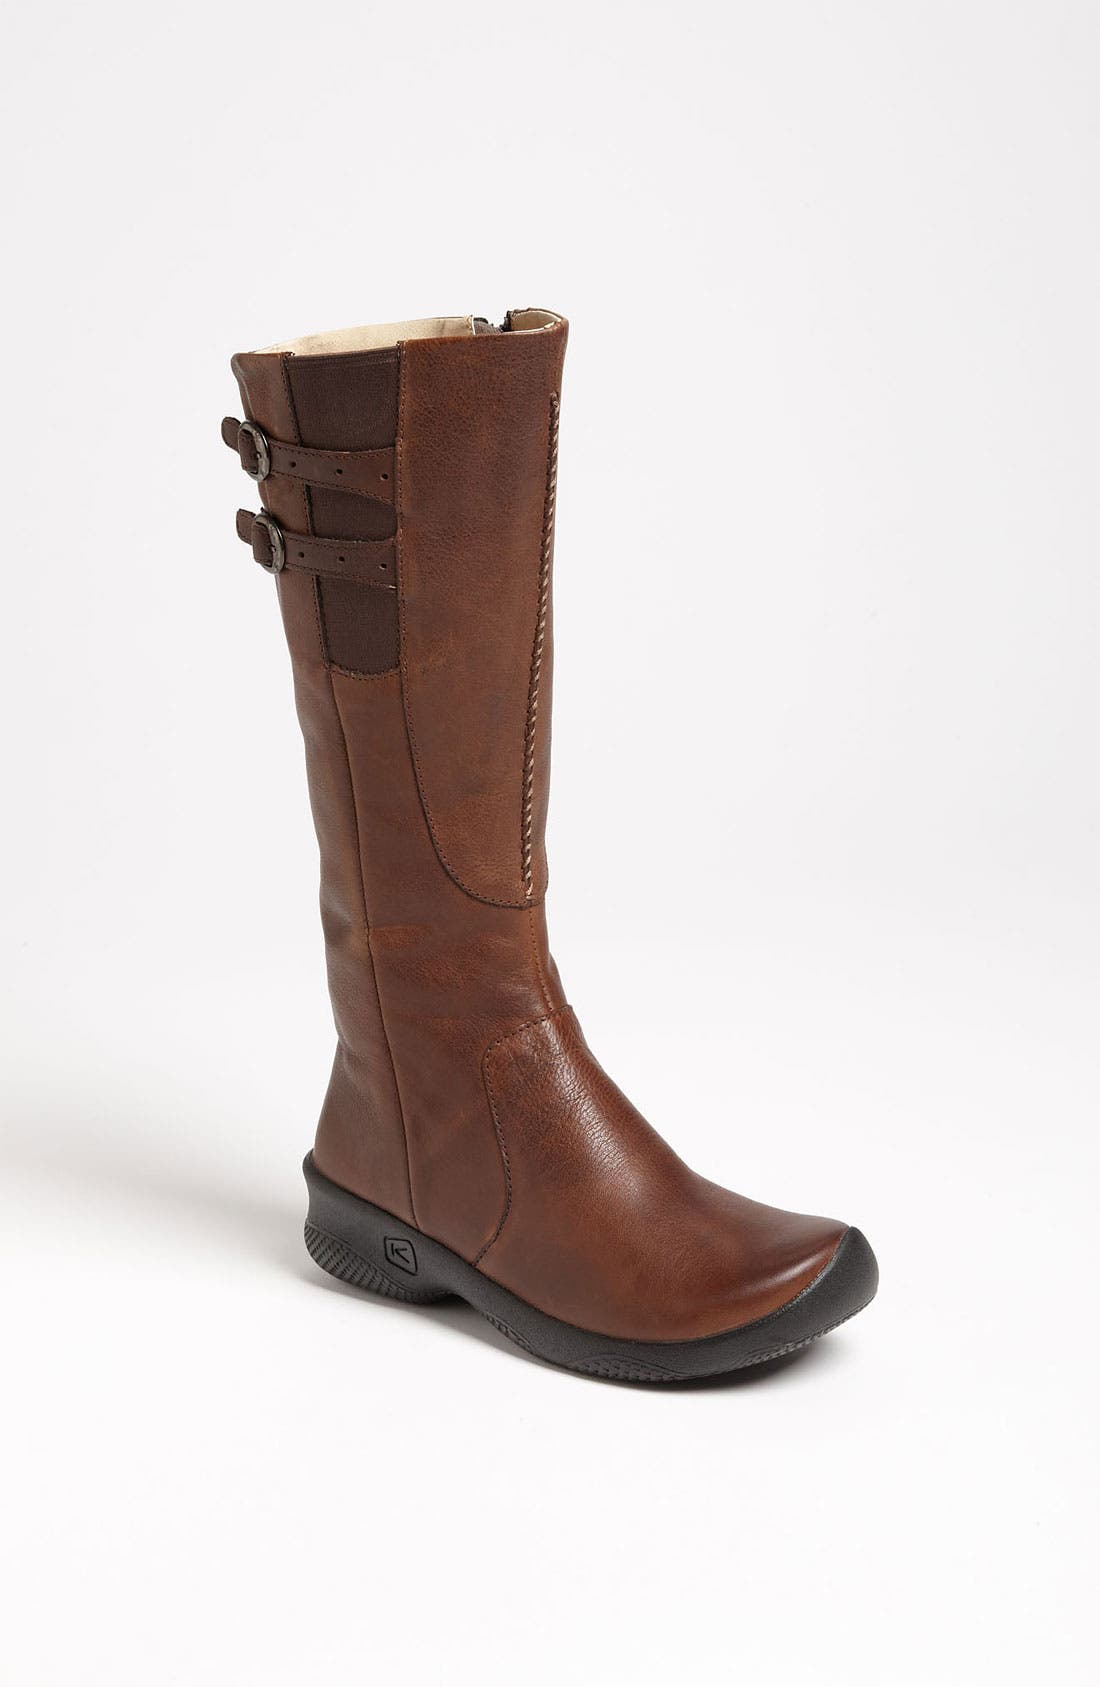 Alternate Image 1 Selected - Keen 'Bern Baby' Boot